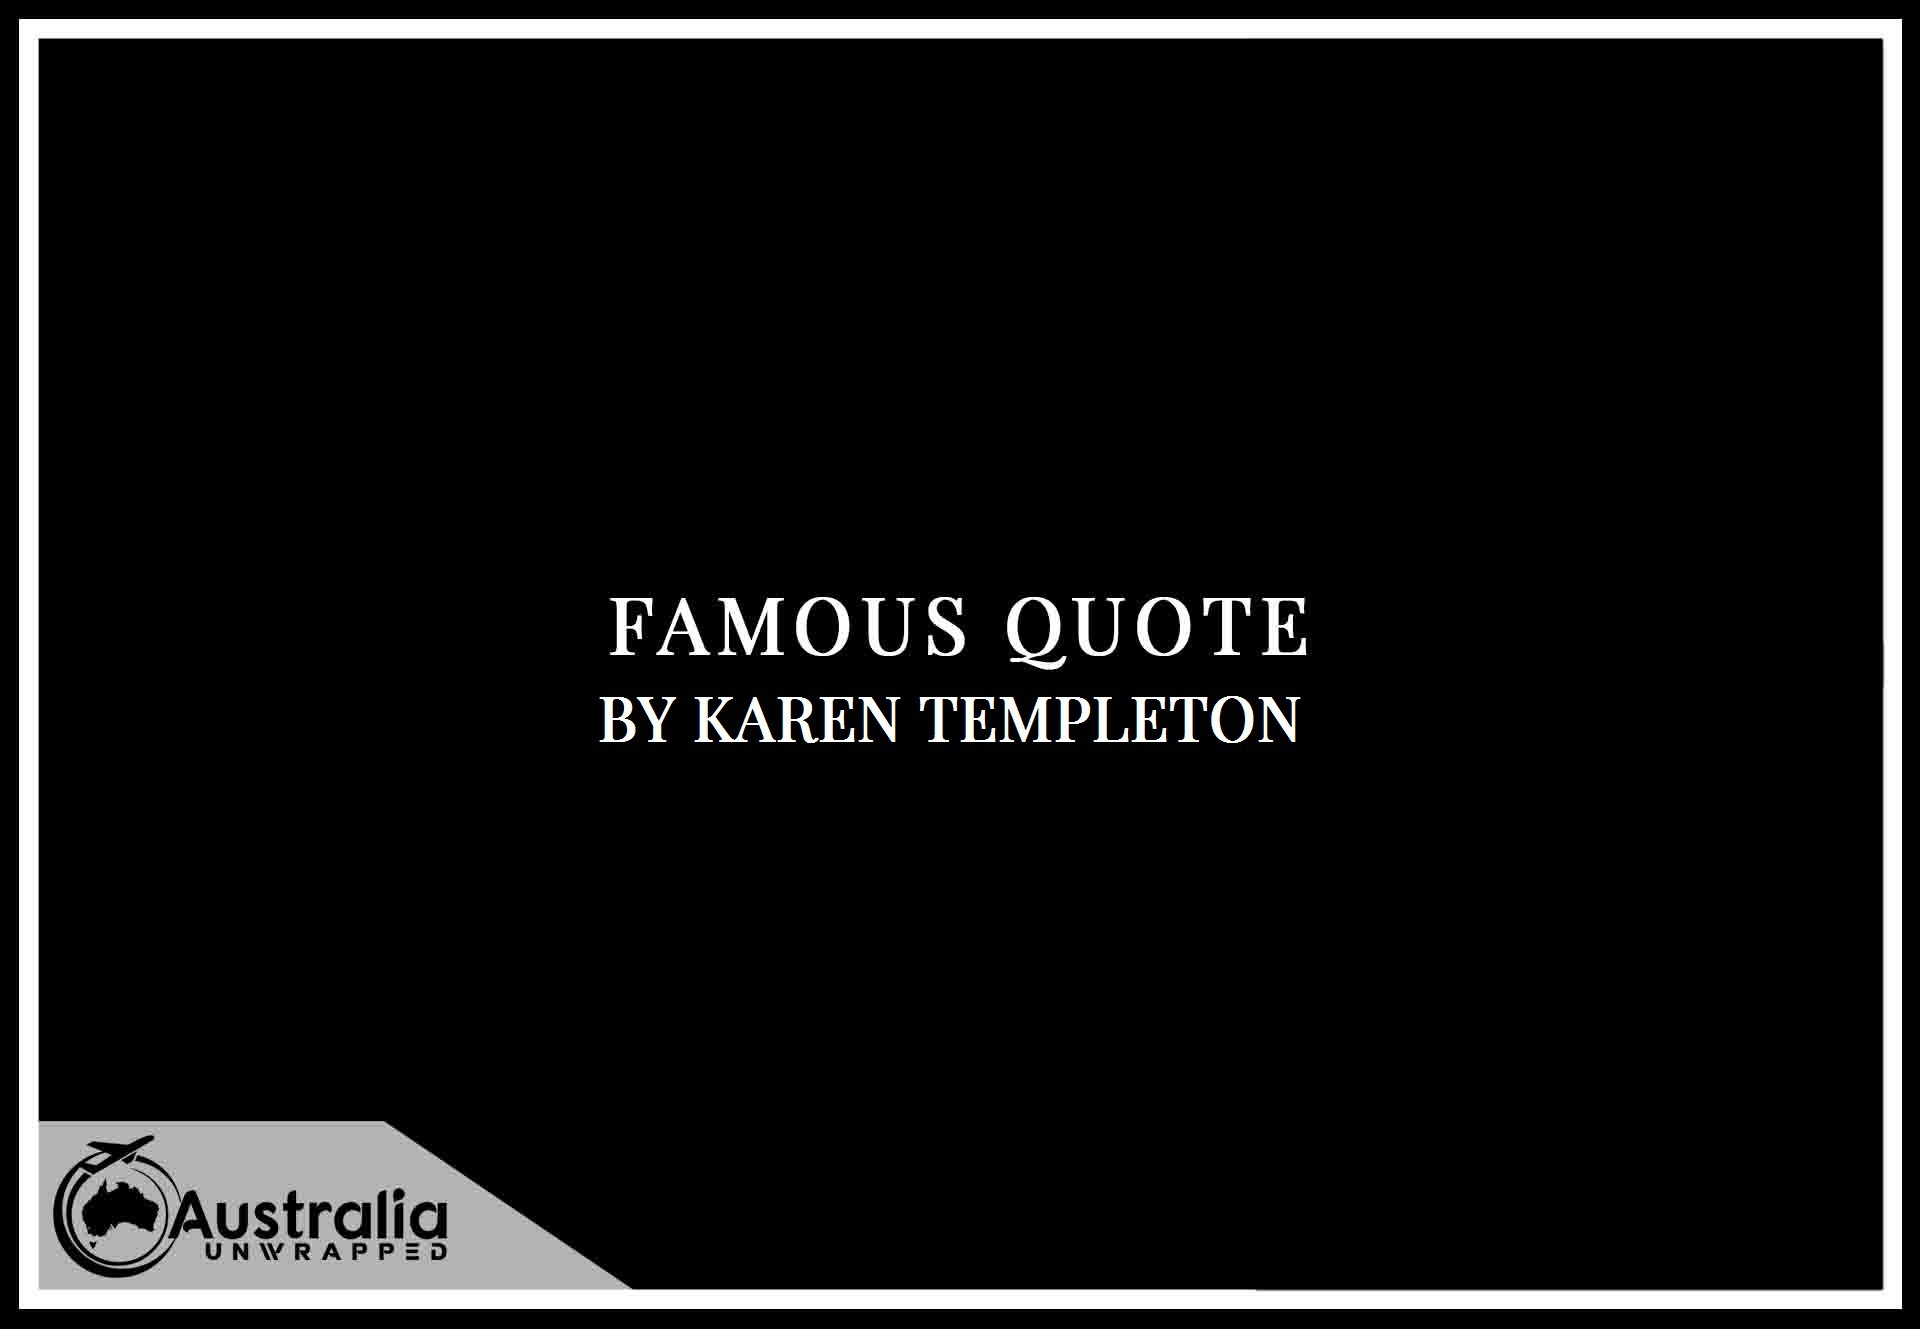 Karen Templeton's Top 1 Popular and Famous Quotes